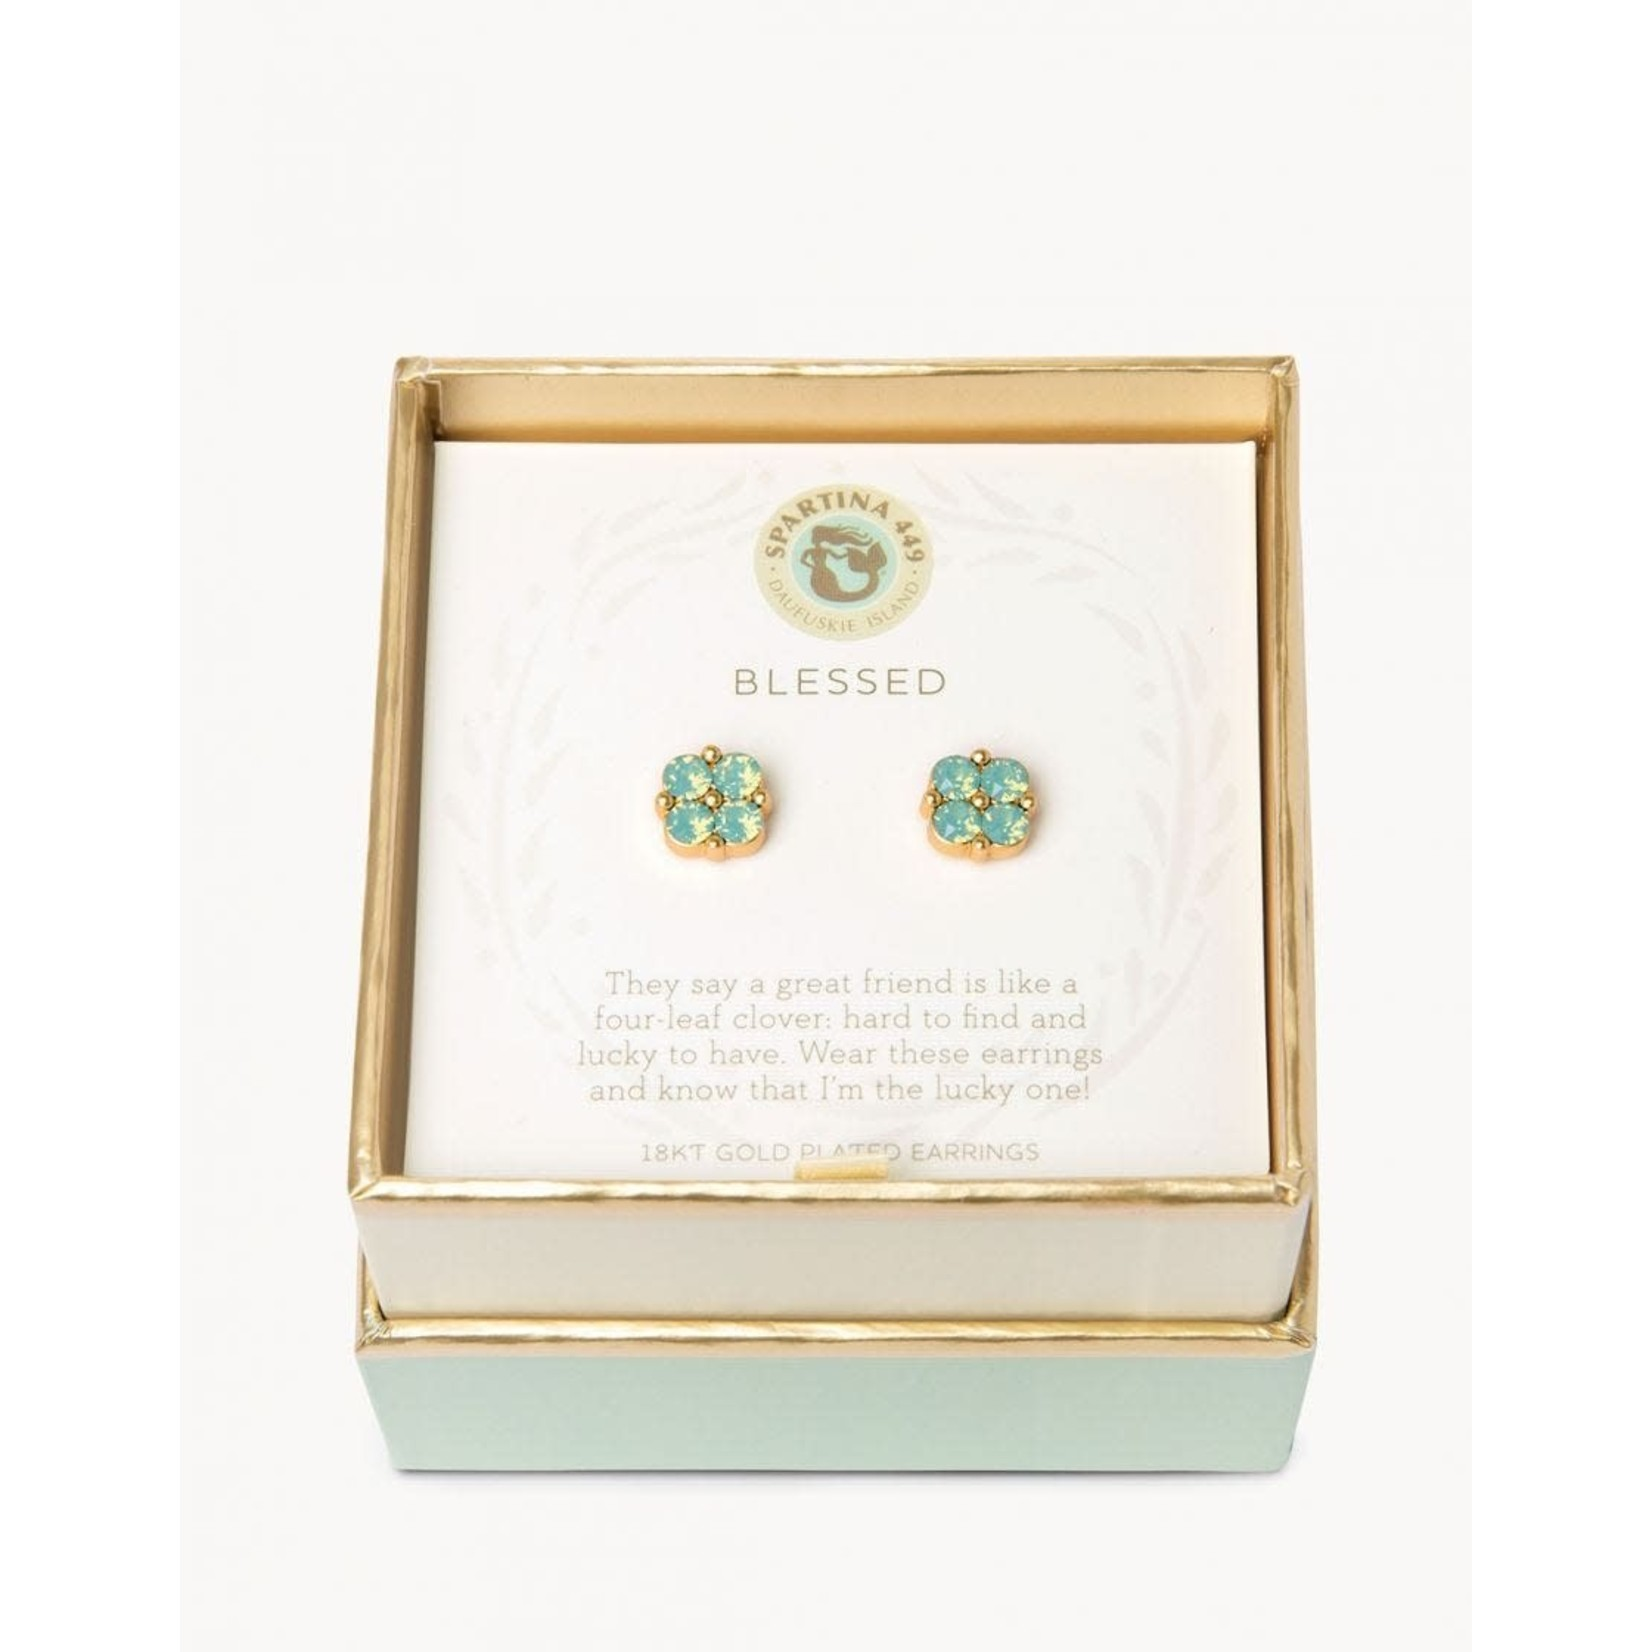 Spartina Blessed Seafoam Clover Studs Gold Earrings